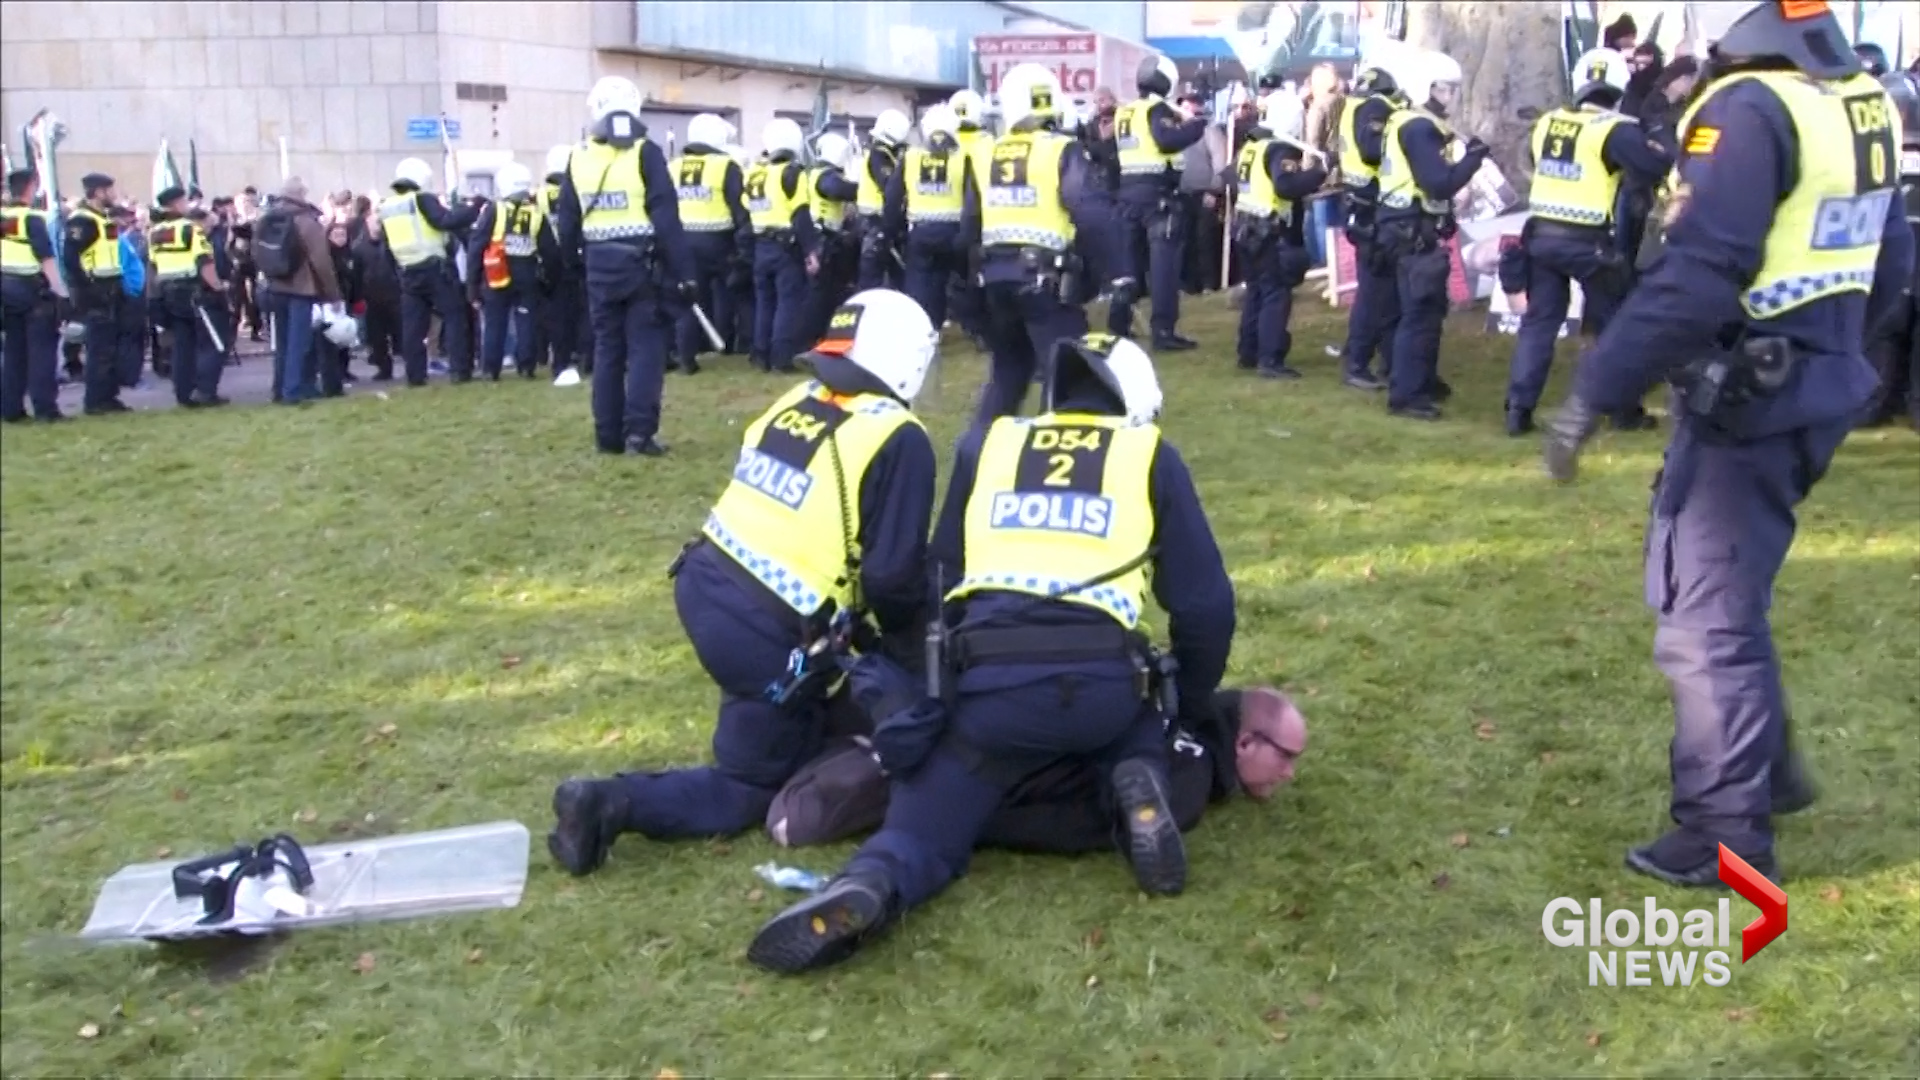 Arrests As Hundreds of Neo-Nazis March in Gothenberg, Sweden